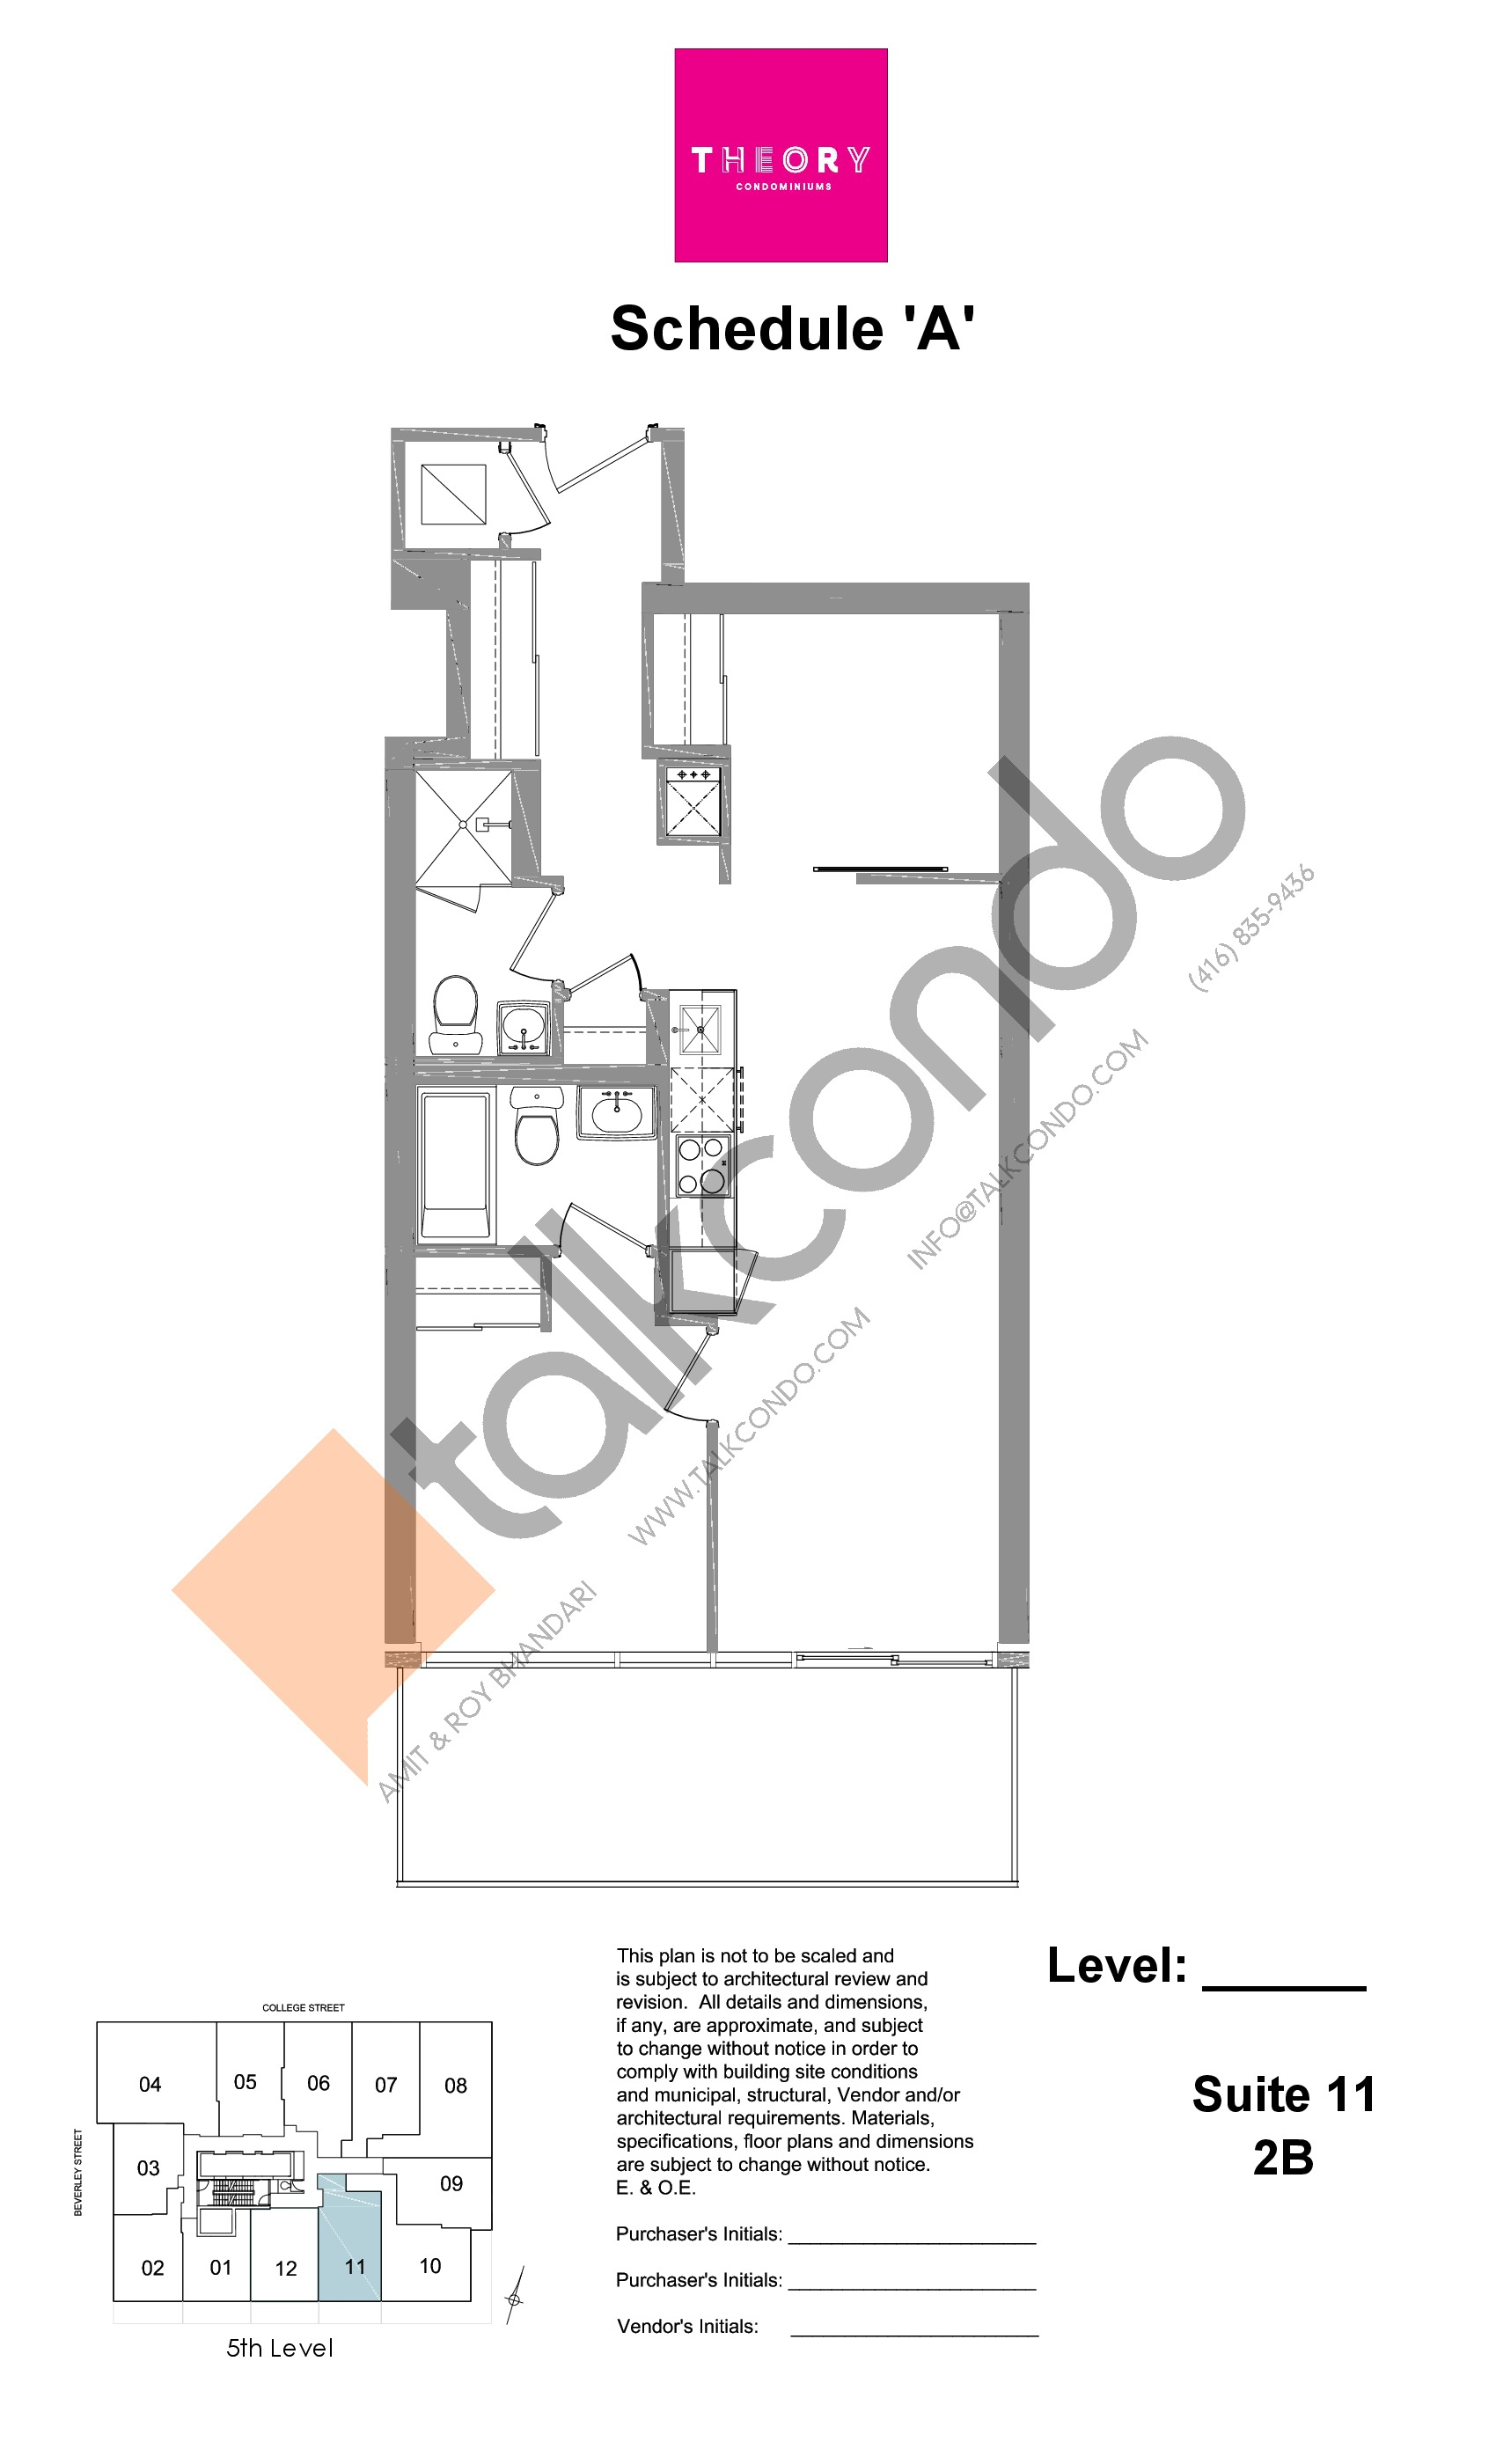 Suite 11 - 2B Floor Plan at Theory Condos - sq.ft